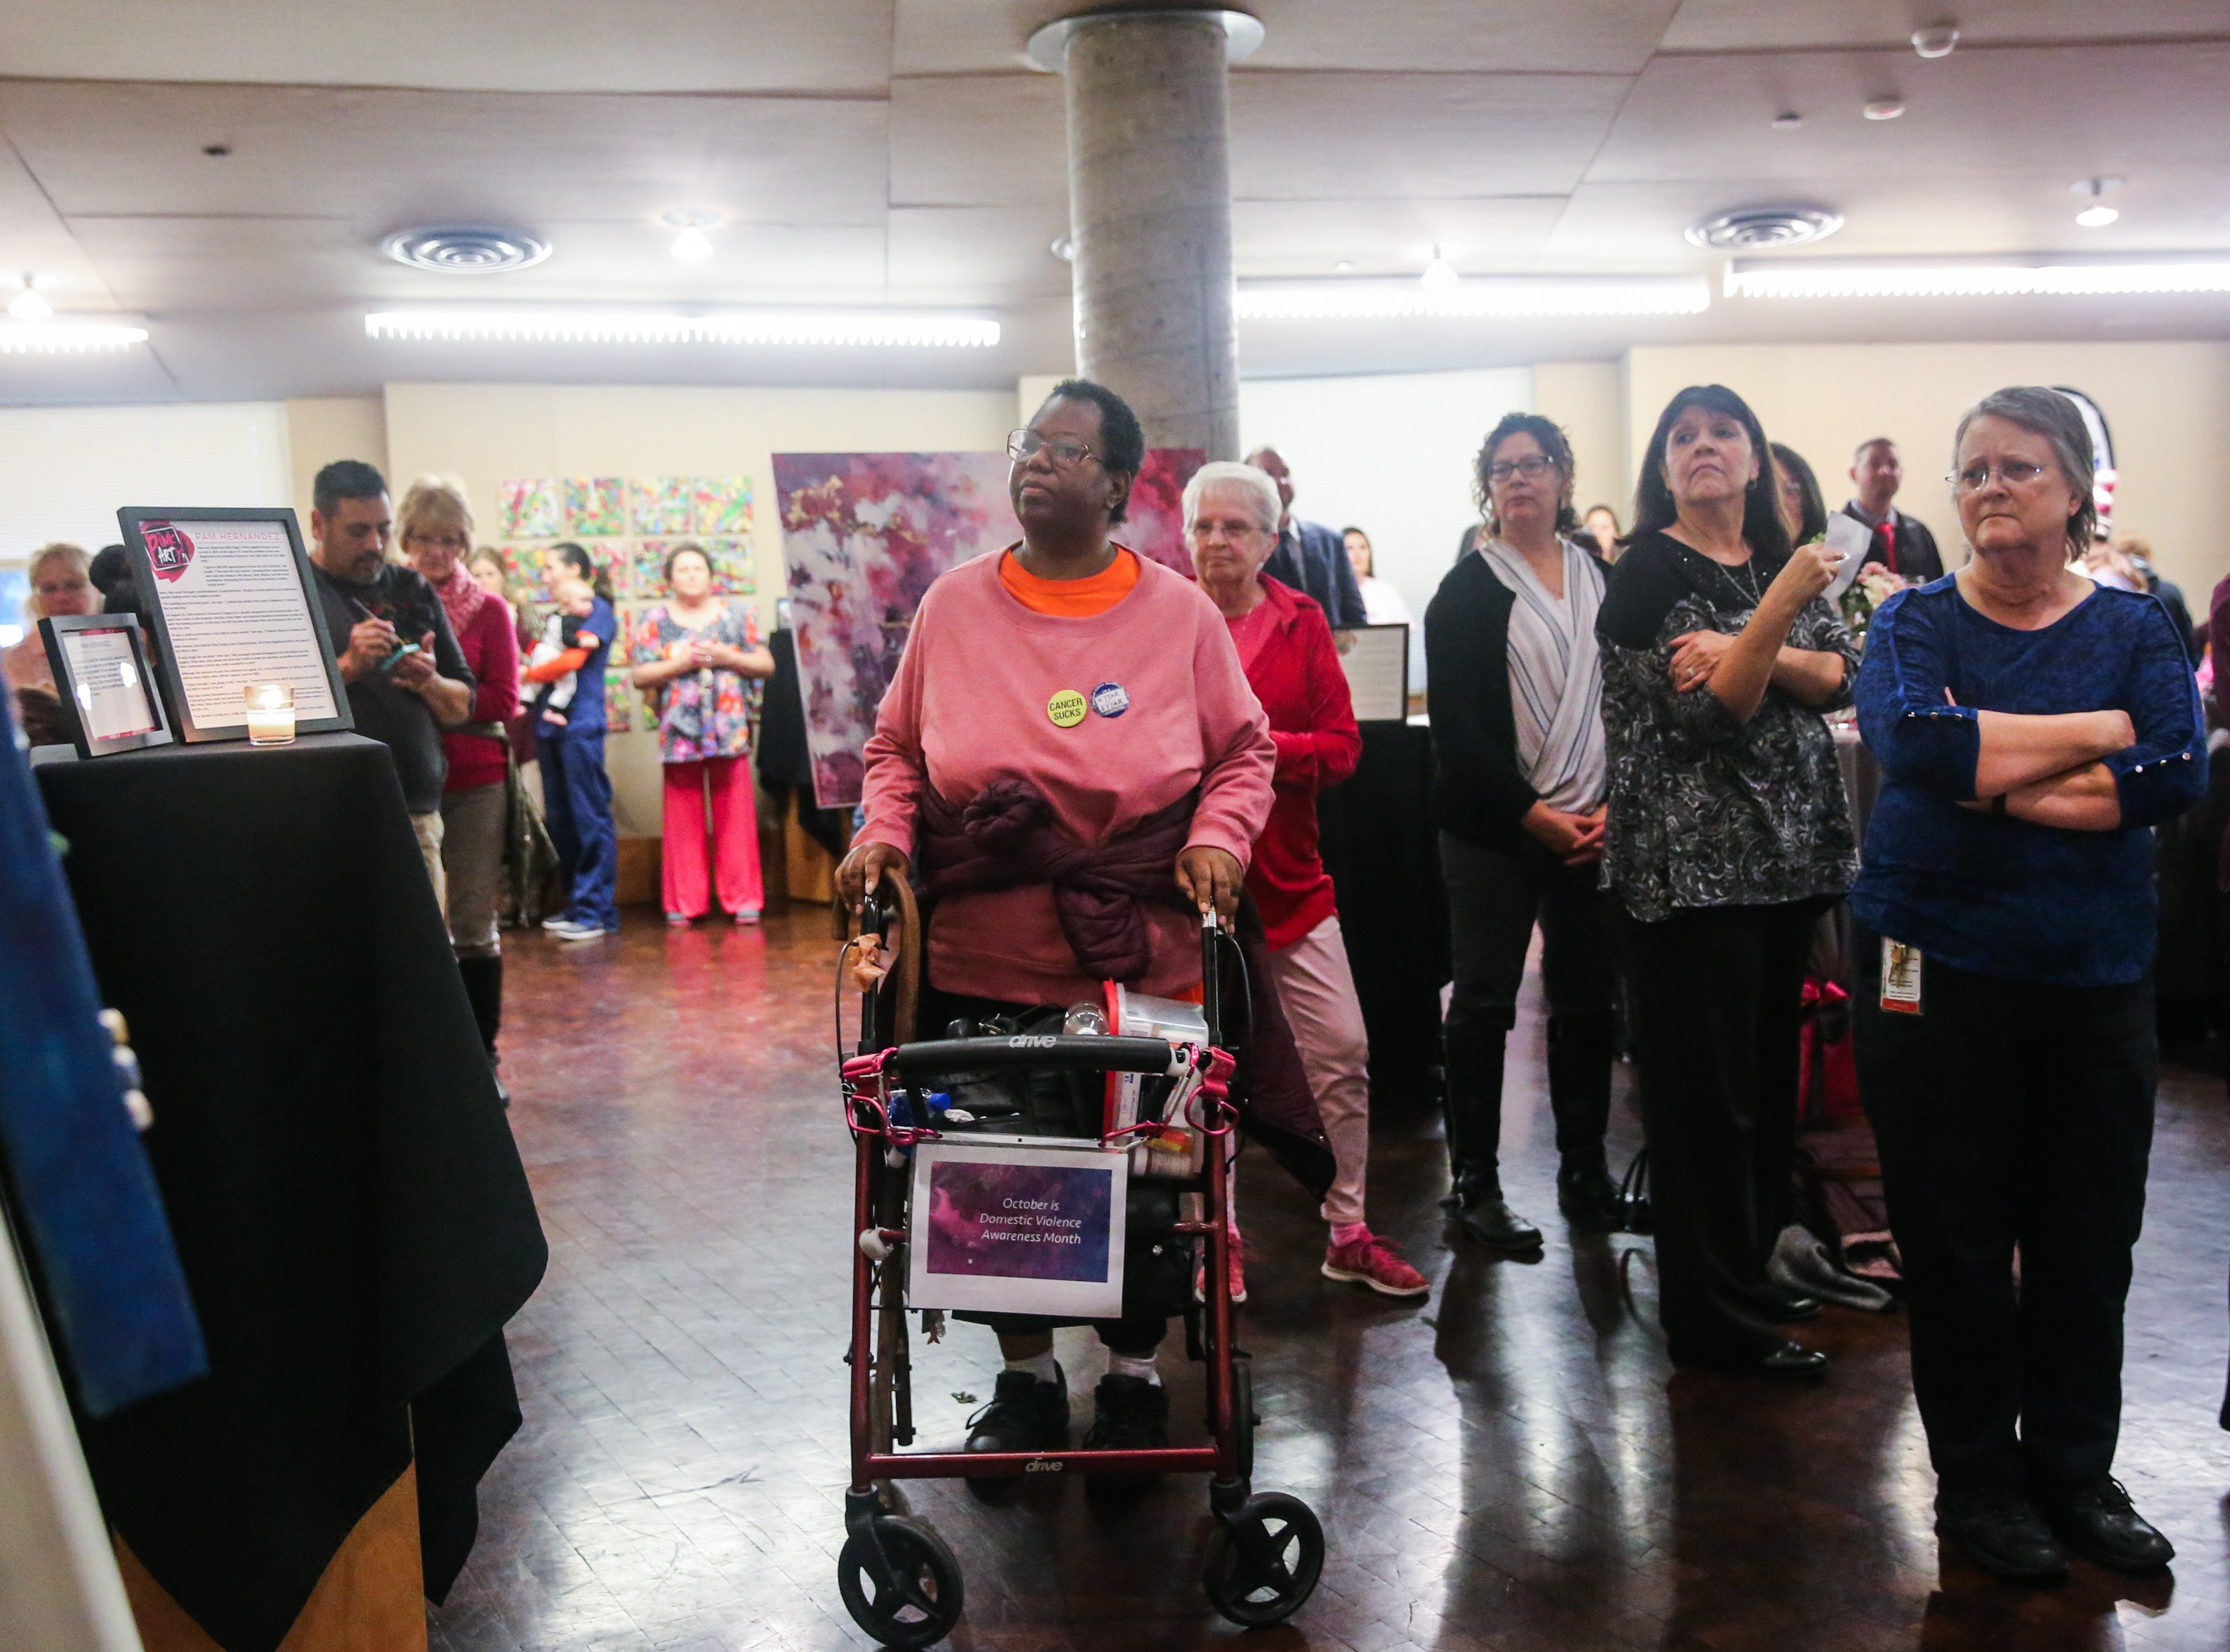 Attendees look over an artwork on display during Shannon's pink pARTy Thursday, Oct. 18, 2018, at San Angelo Museum of Fine Arts.